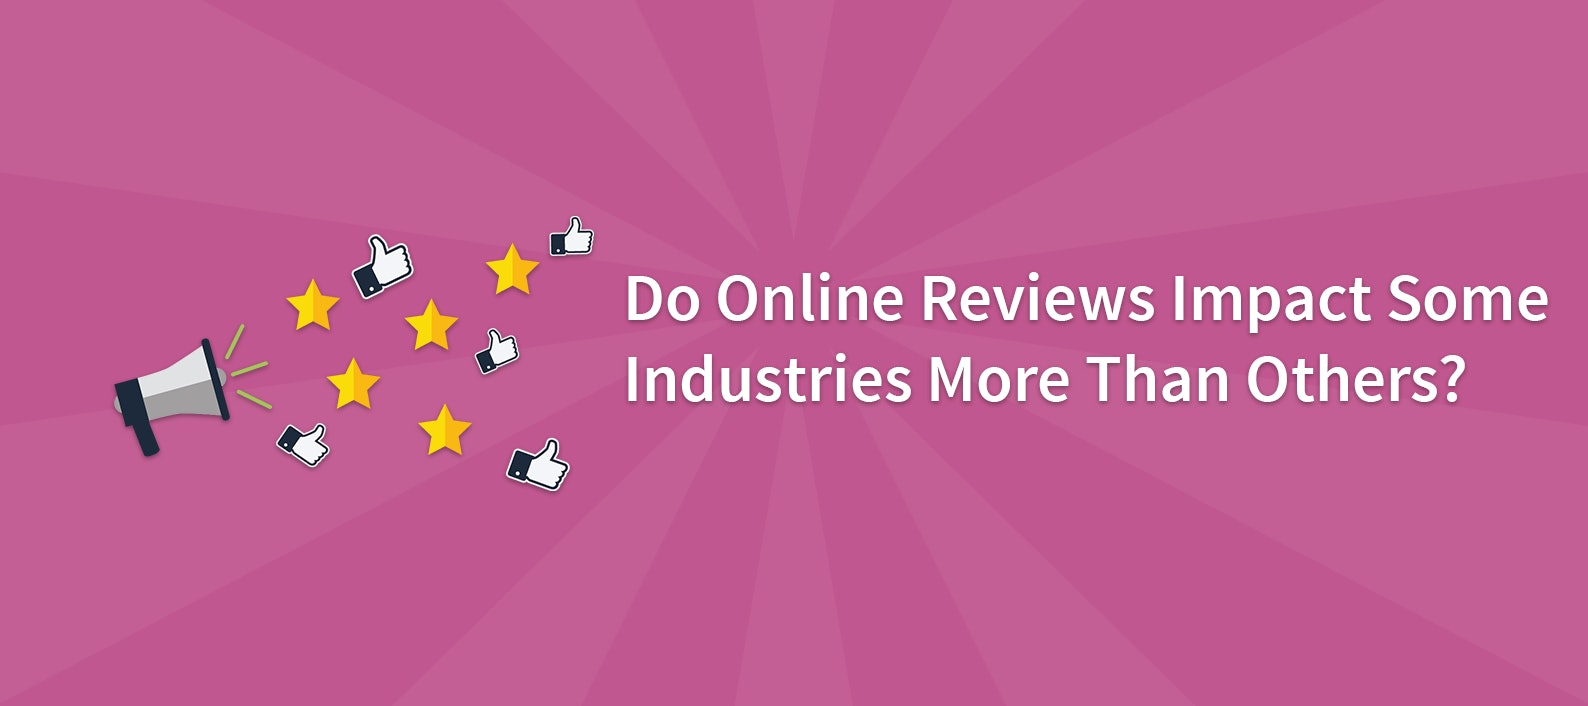 Do Online Reviews Impact Some Industries More Than Others?